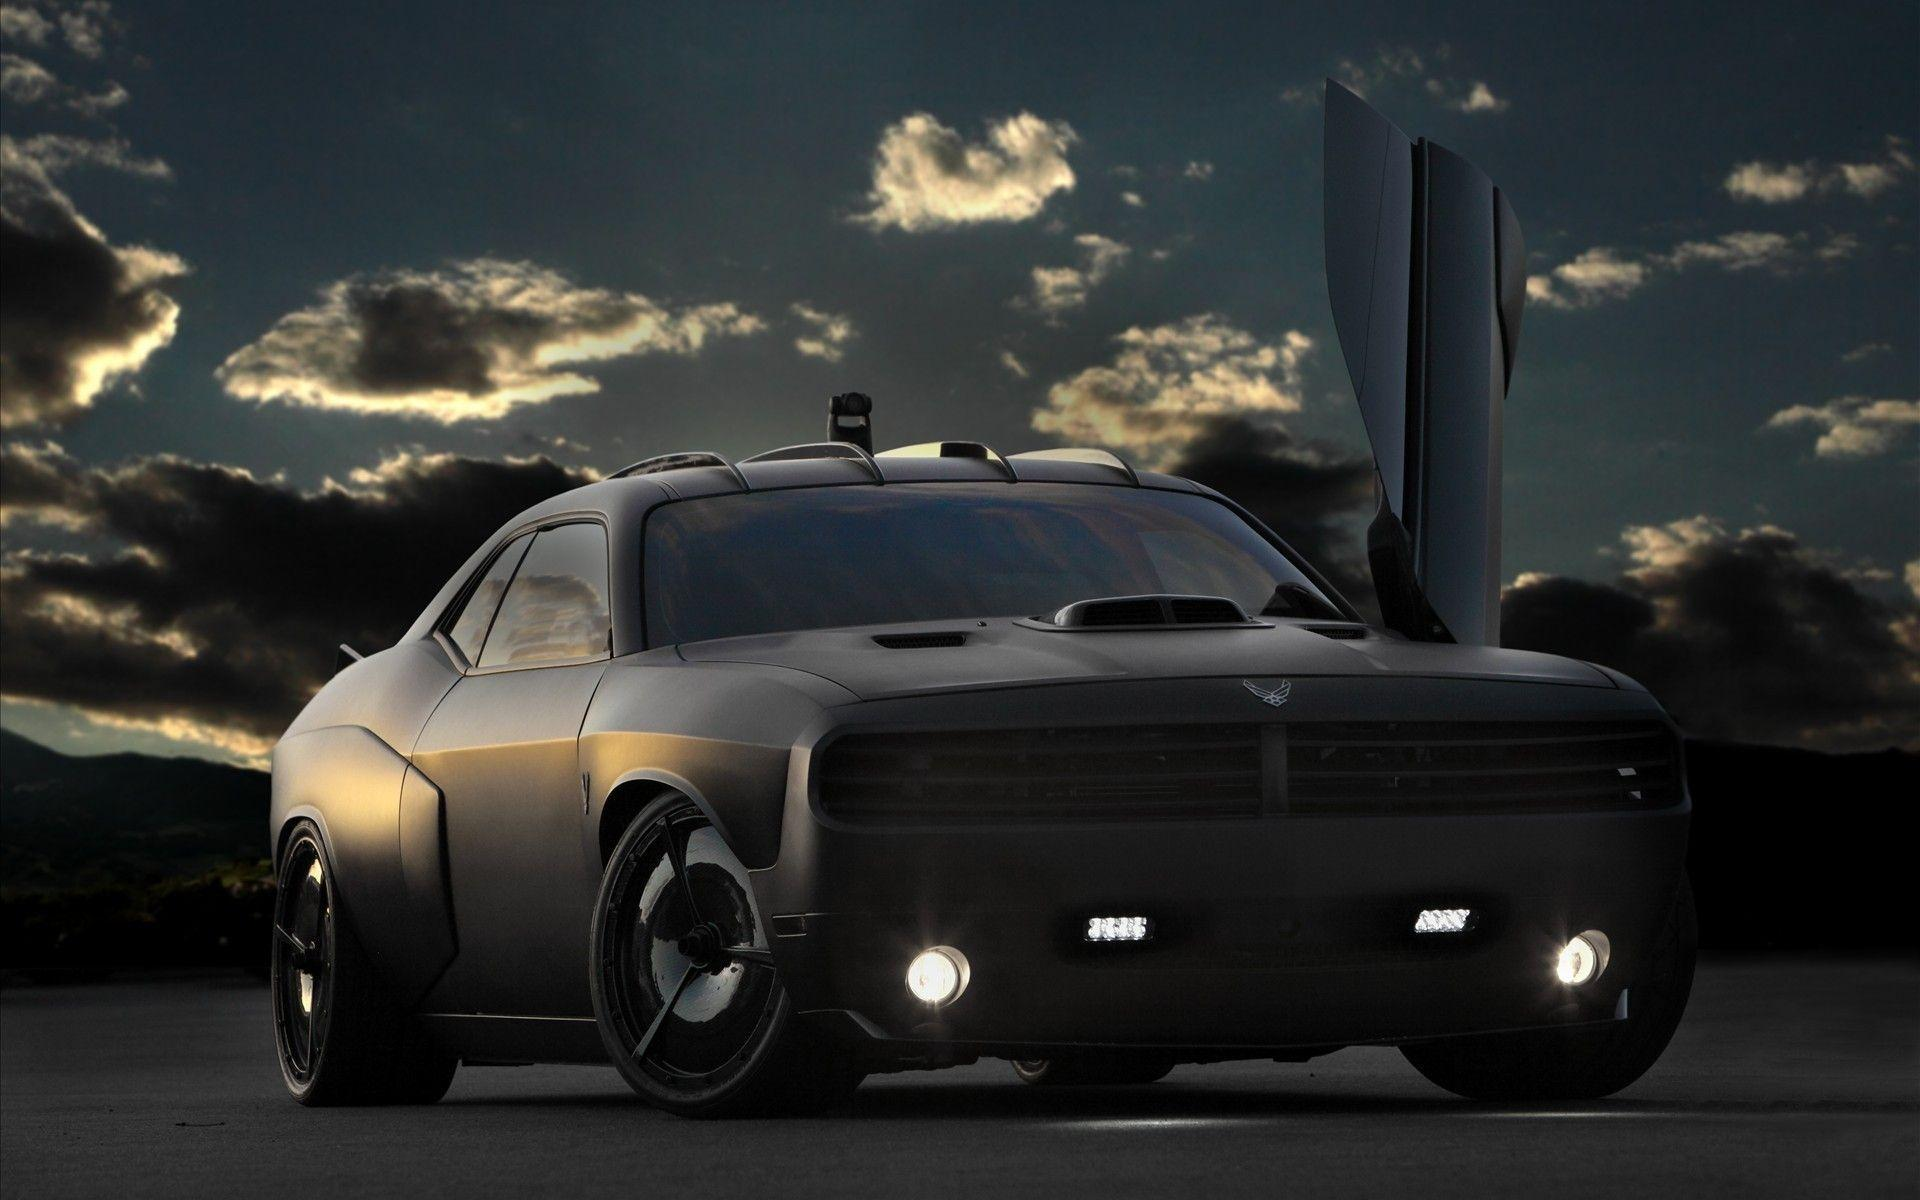 cool car wallpapersfree moving wallpapers - DriverLayer Search Engine